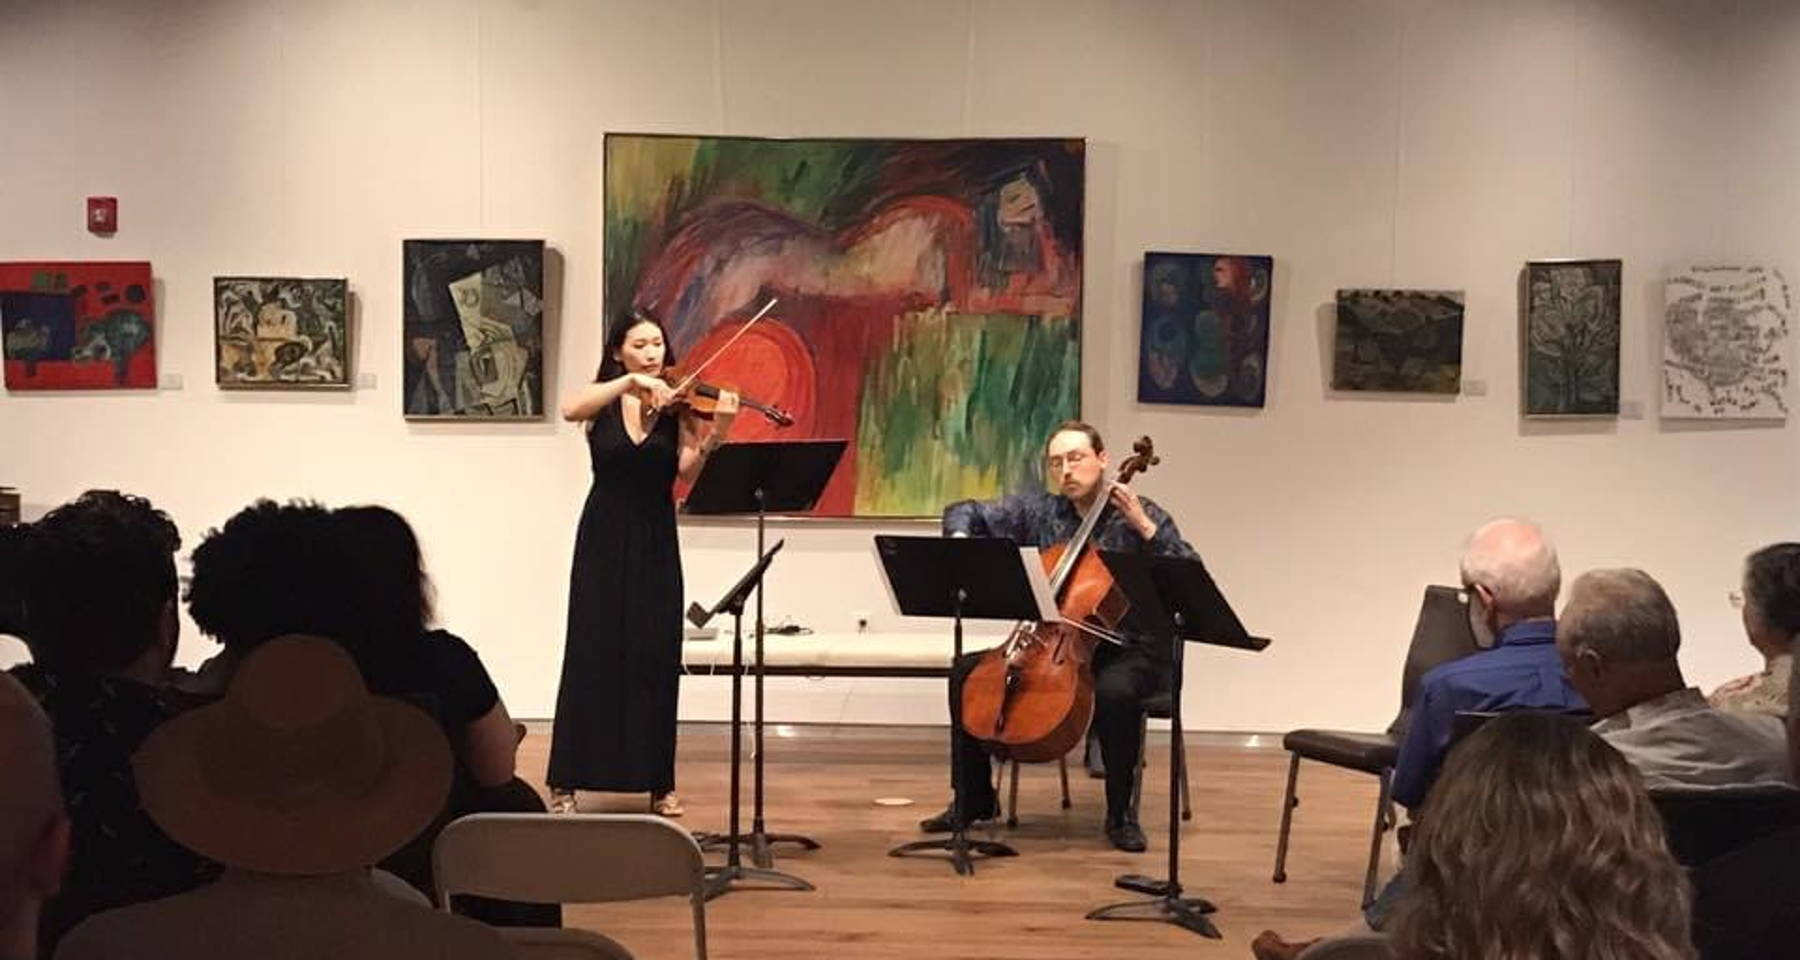 Capital String Duo performs music by Bach, Piazzolla and others